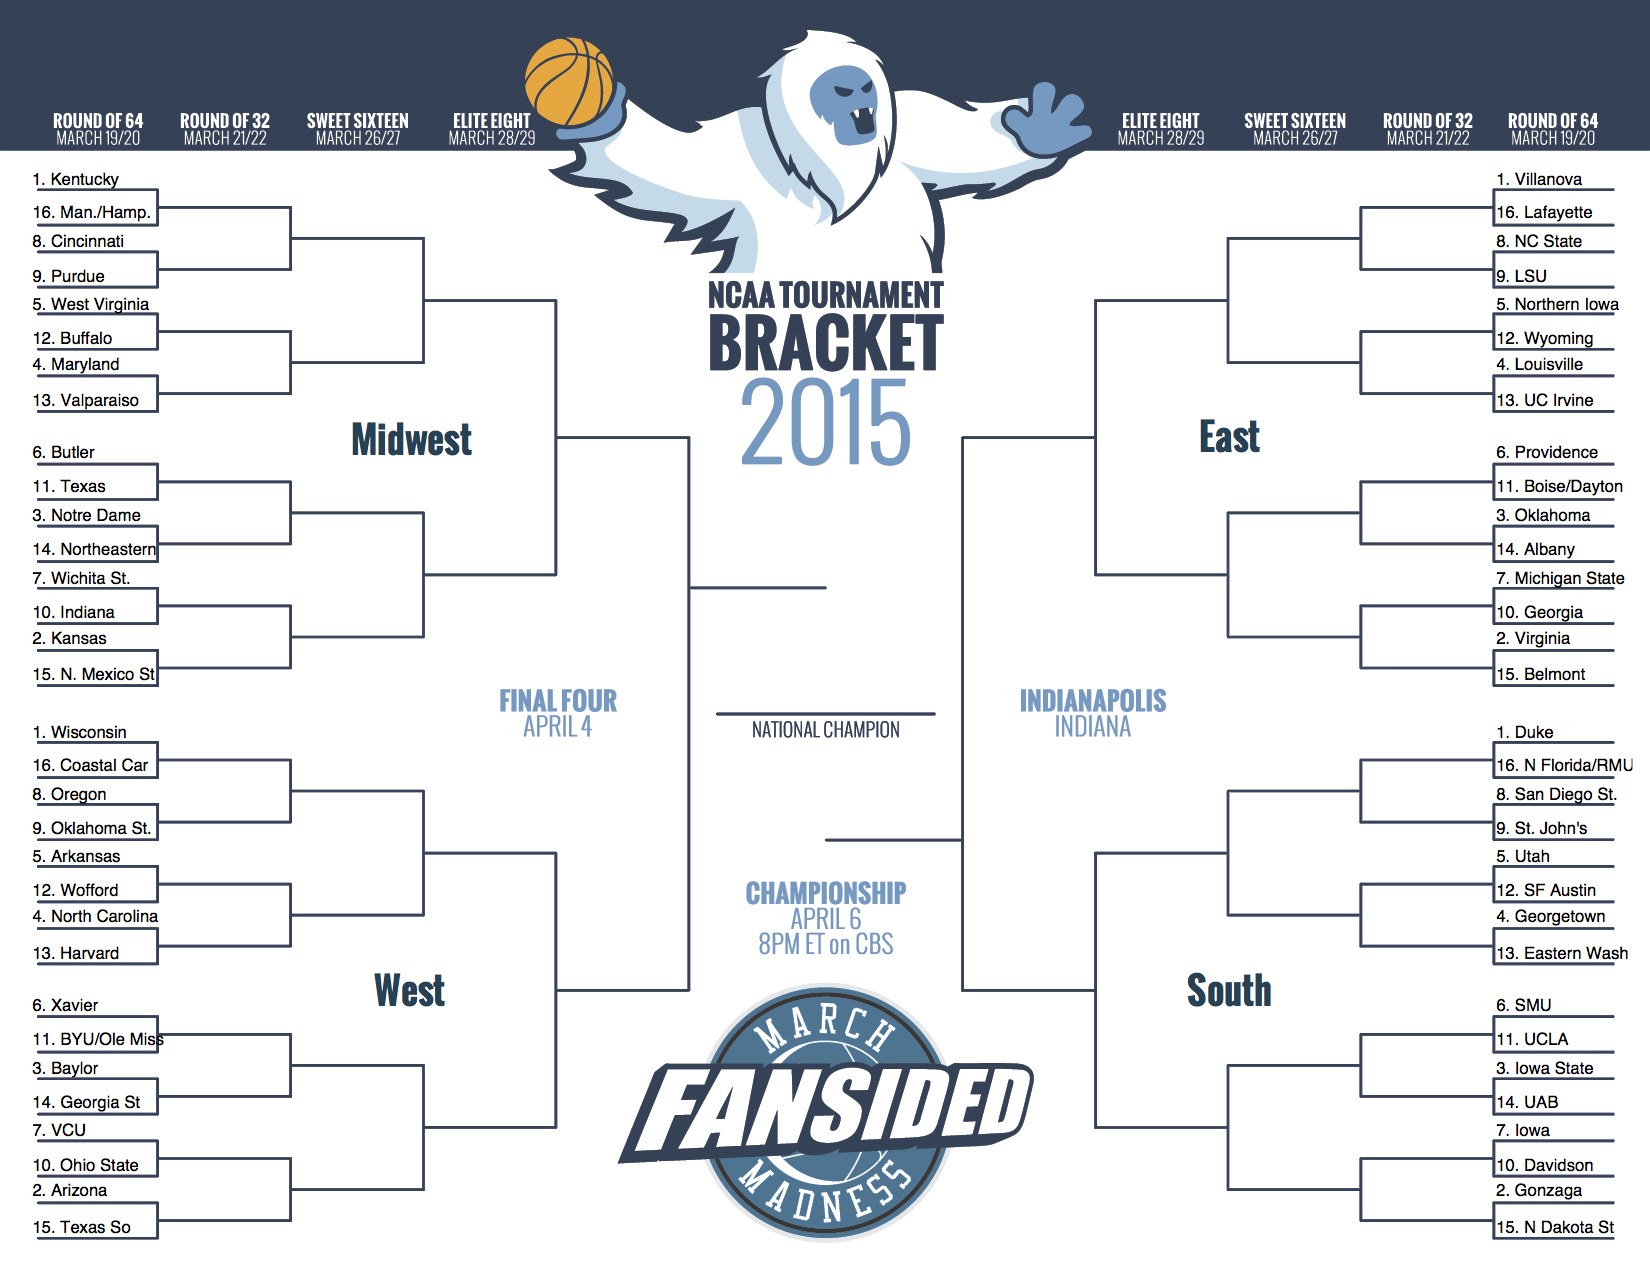 image regarding Printable March Madness Bracket called NCAA Bracket 2015: Printable Bracket For March Insanity